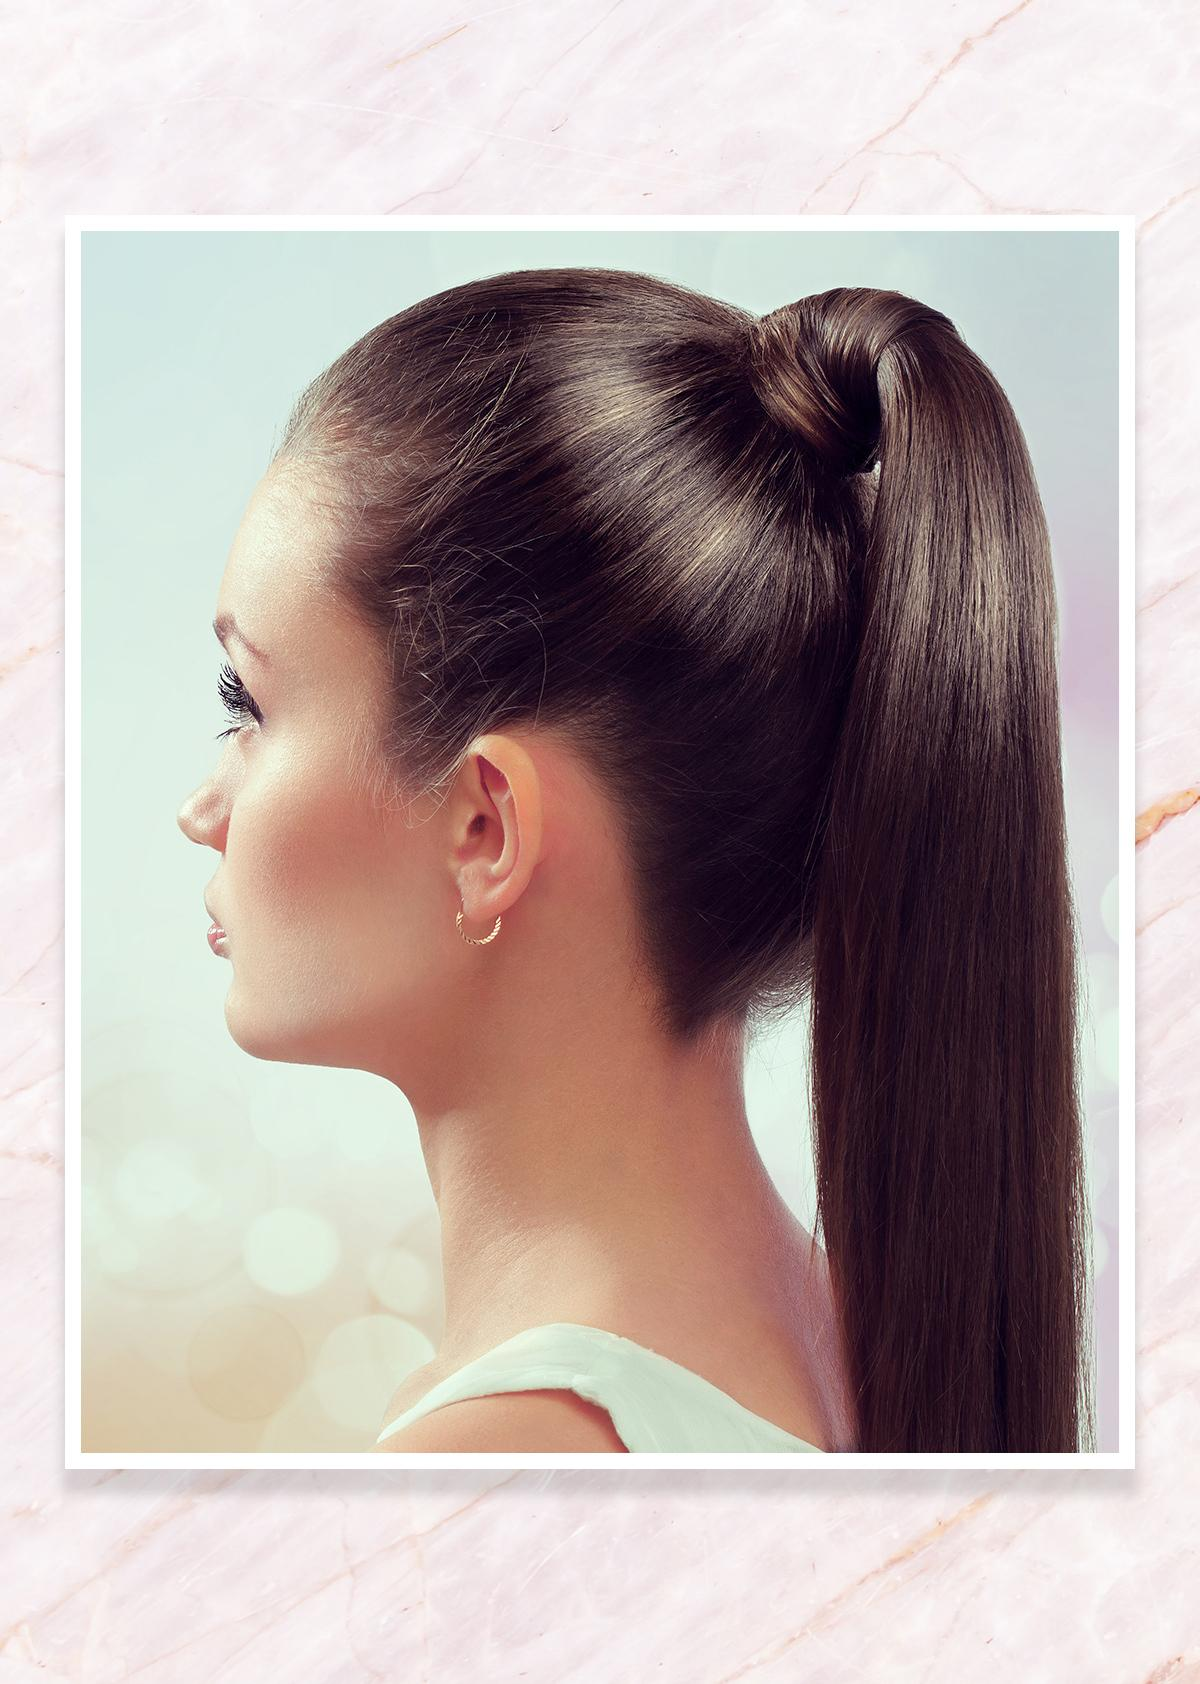 Earrings for a high pony tail